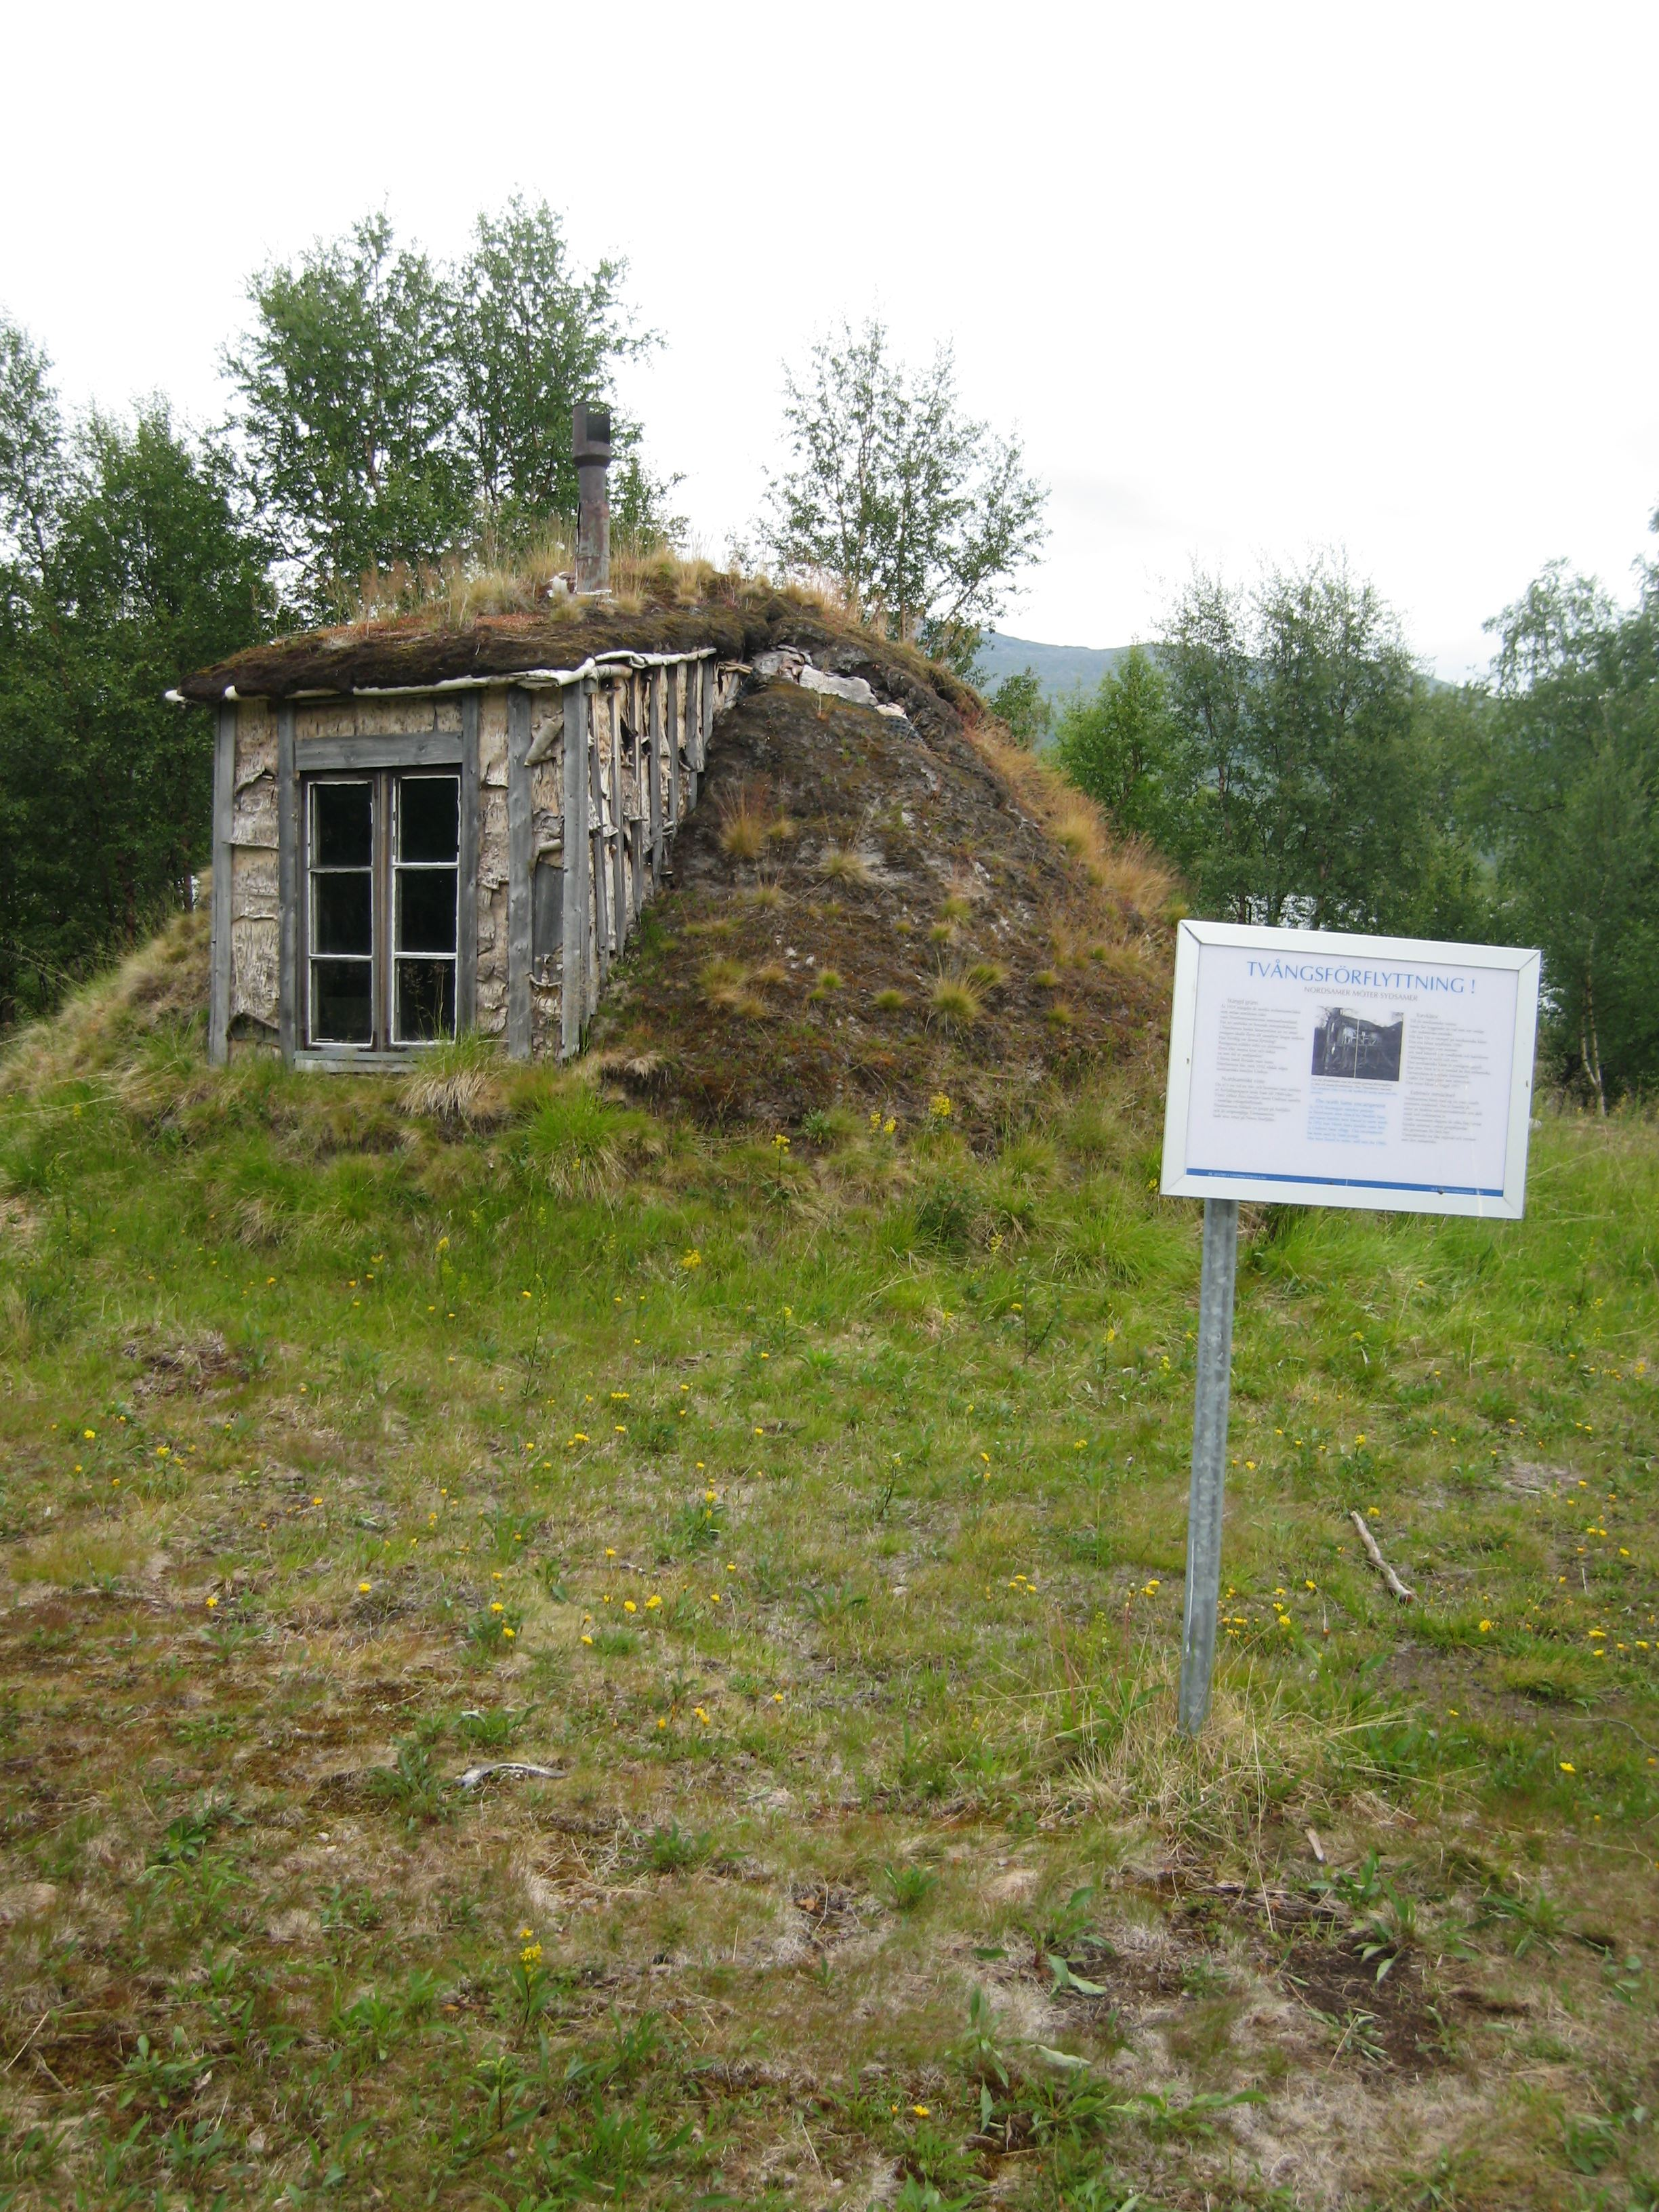 The Sami settlement at lake Gausjosjön